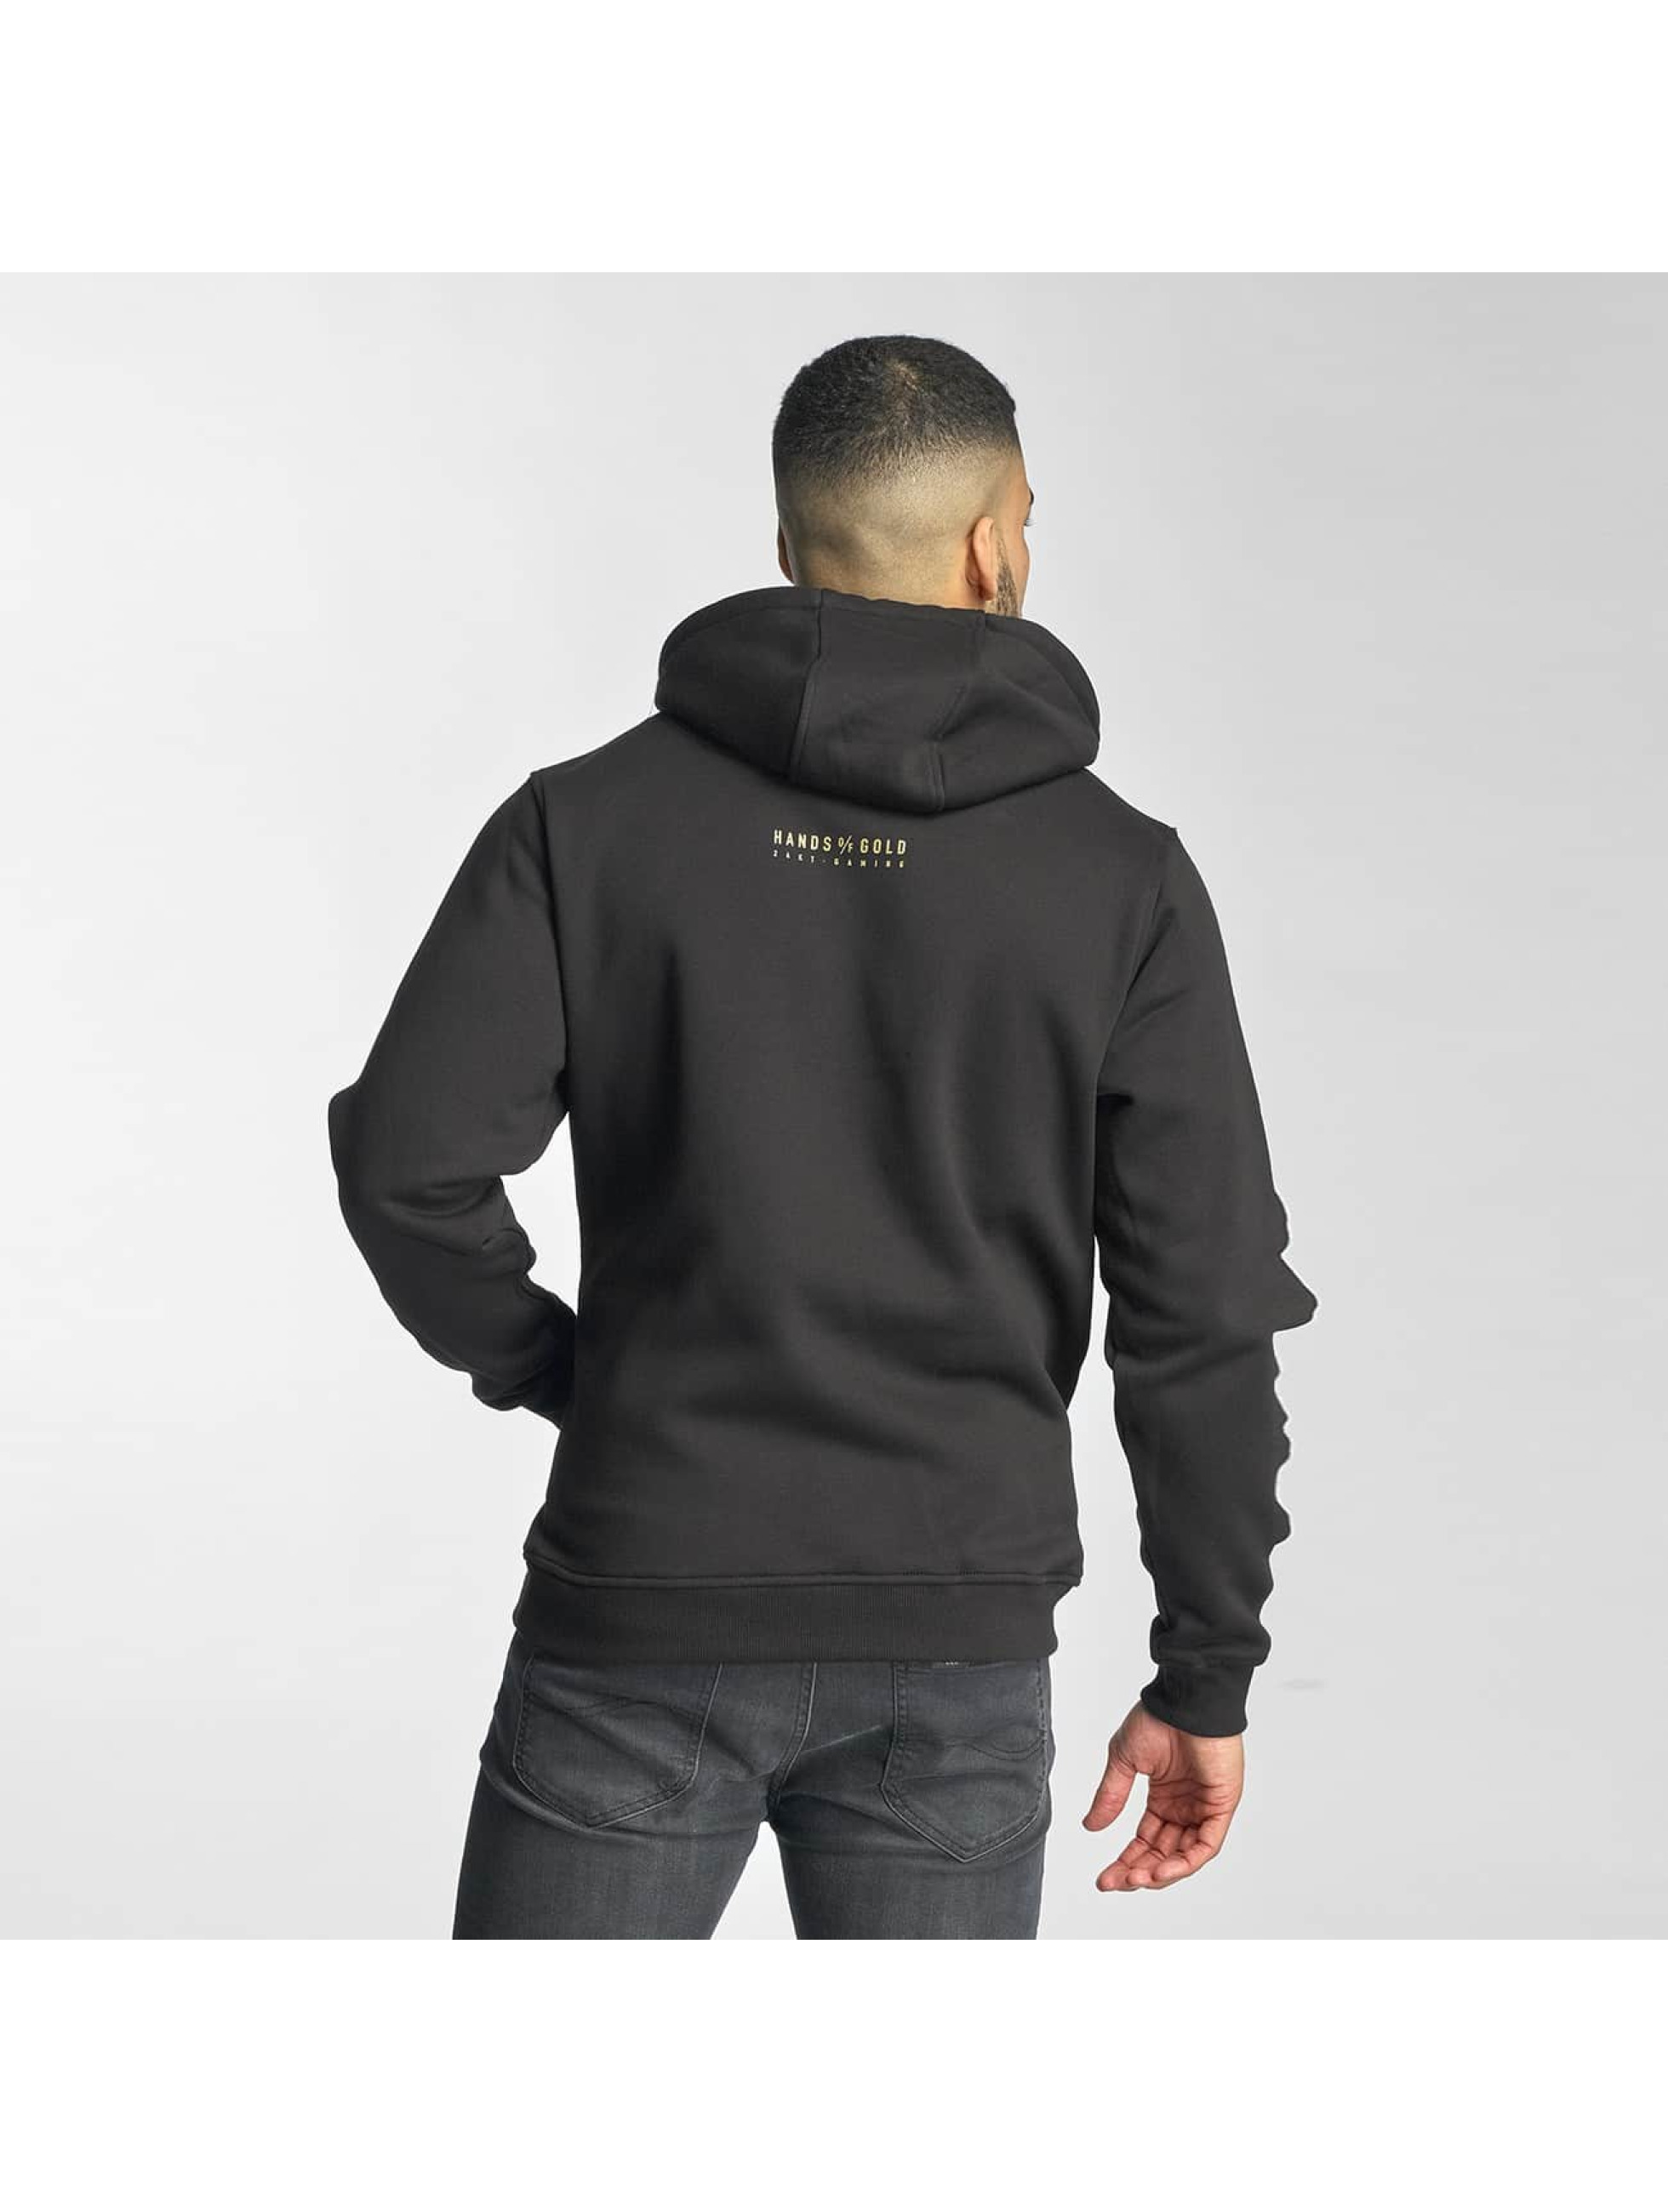 Hands of Gold Hoody All Day zwart